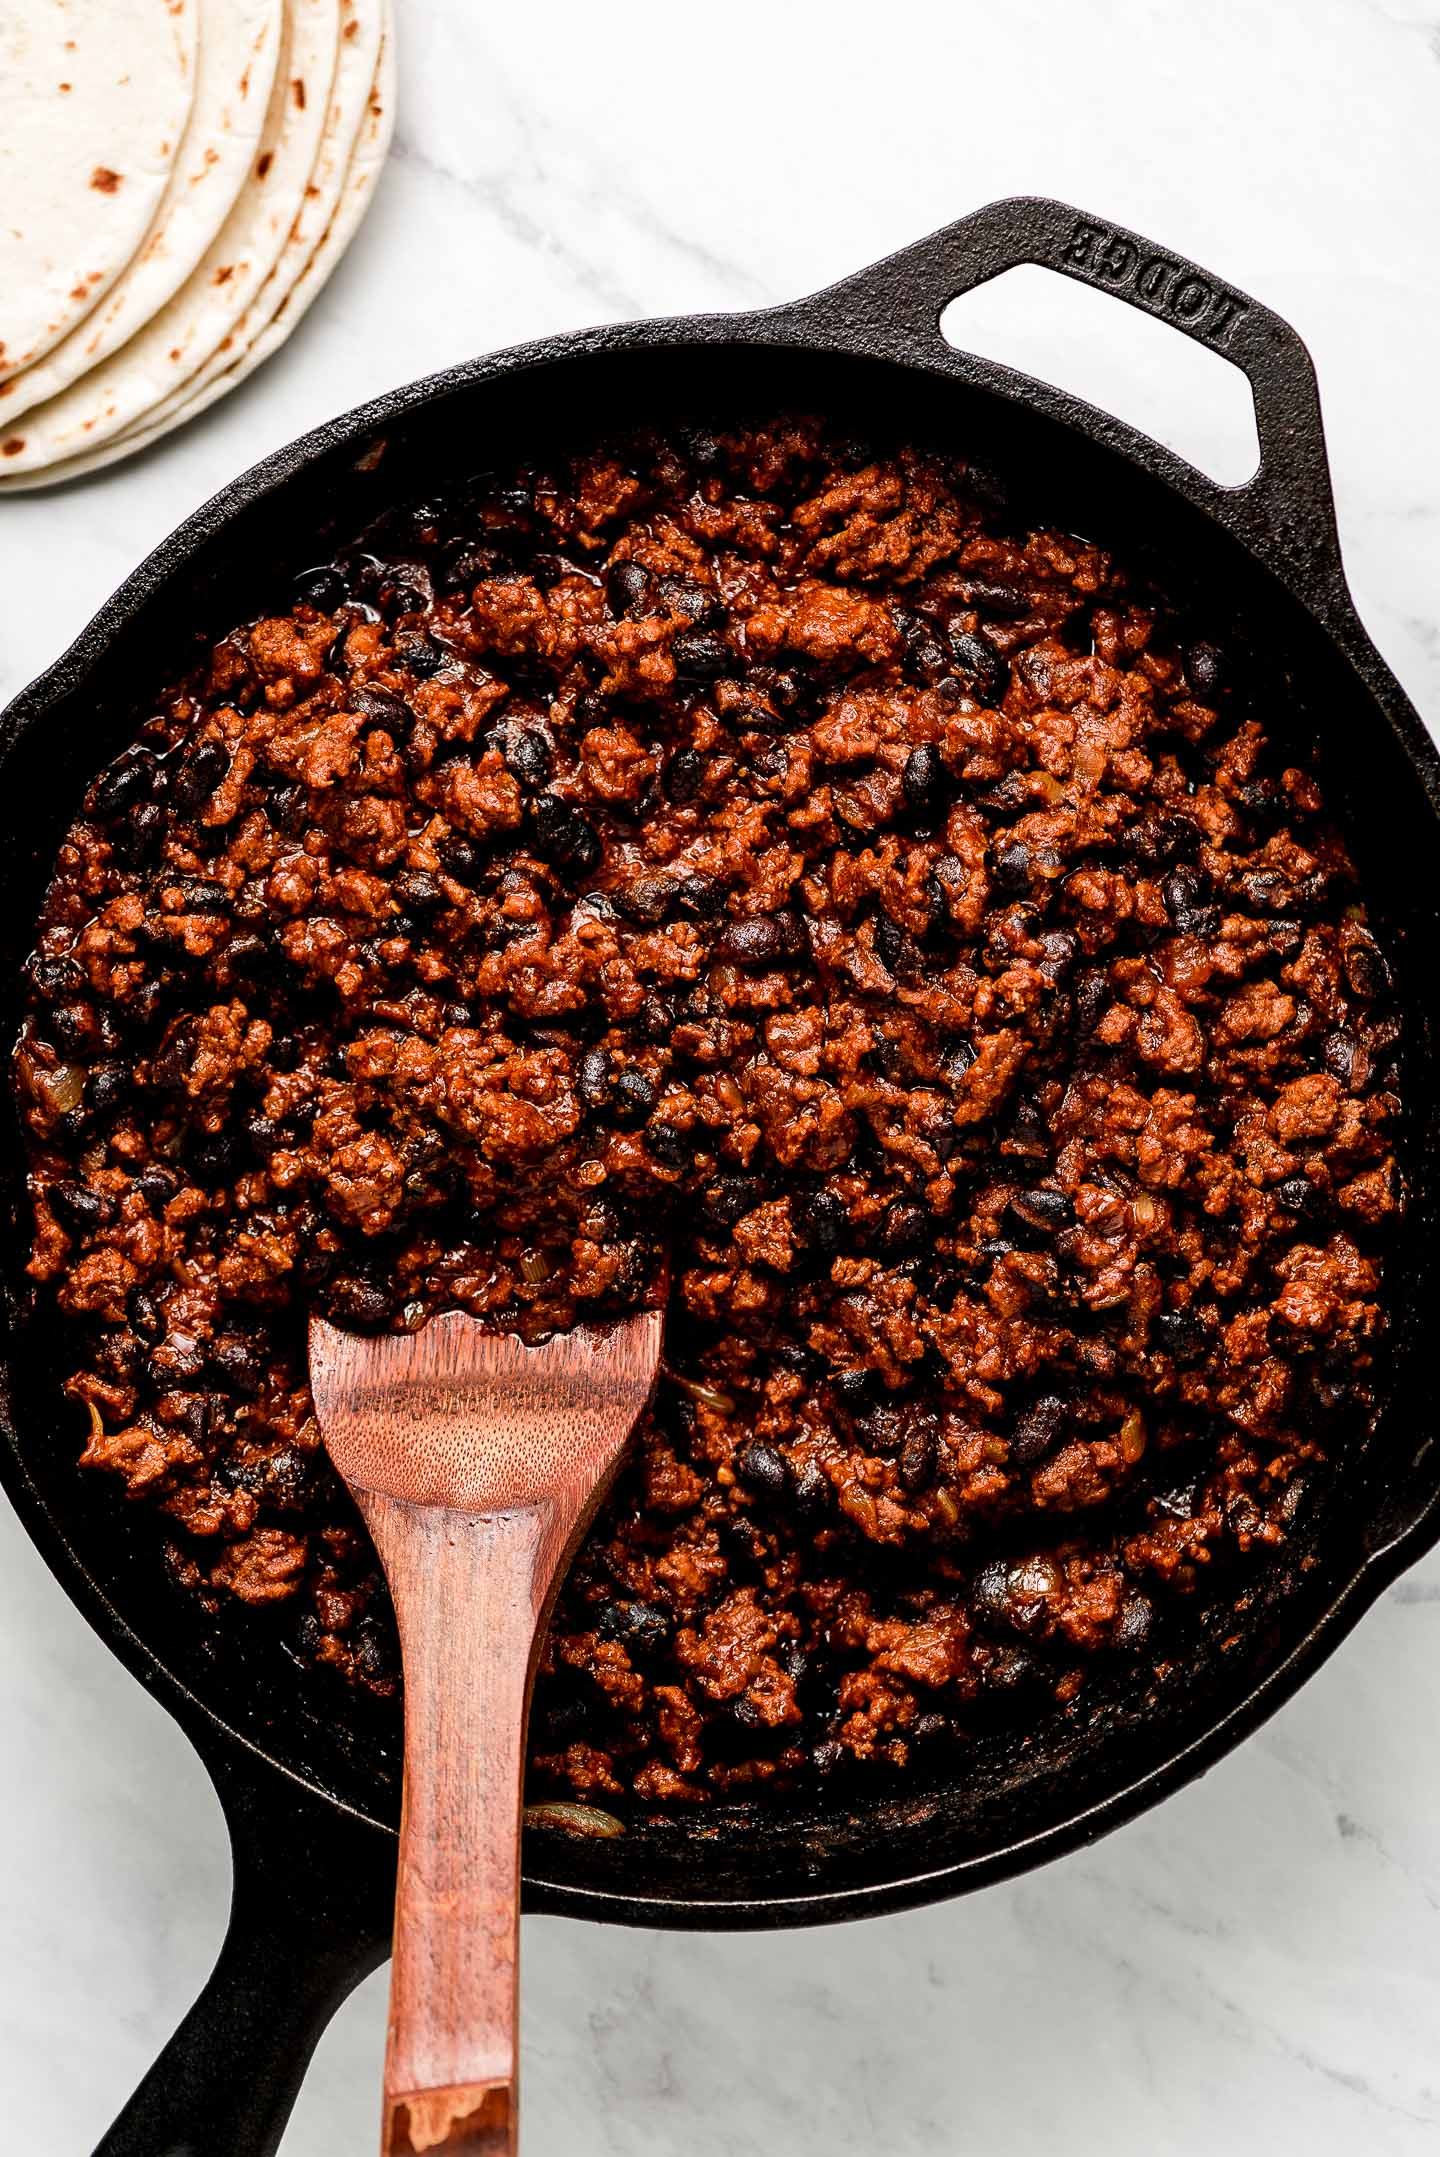 Ground Beef Taco Meat with black beans in a cast iron skillet.